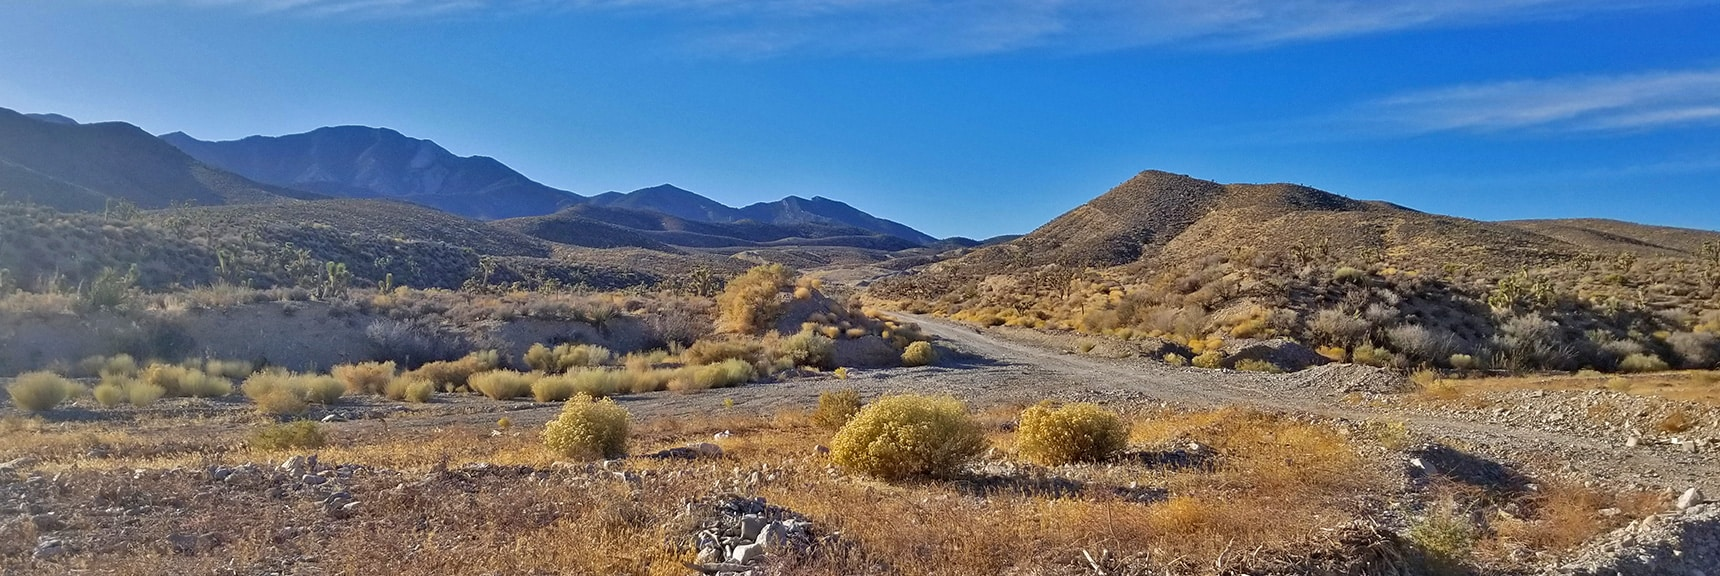 View Up Turnoff Toward Northern La Madre Mountains Wilderness Area   Harris Springs Rd, Harris Mountain Rd   Spring Mountains Wilderness, Nevada